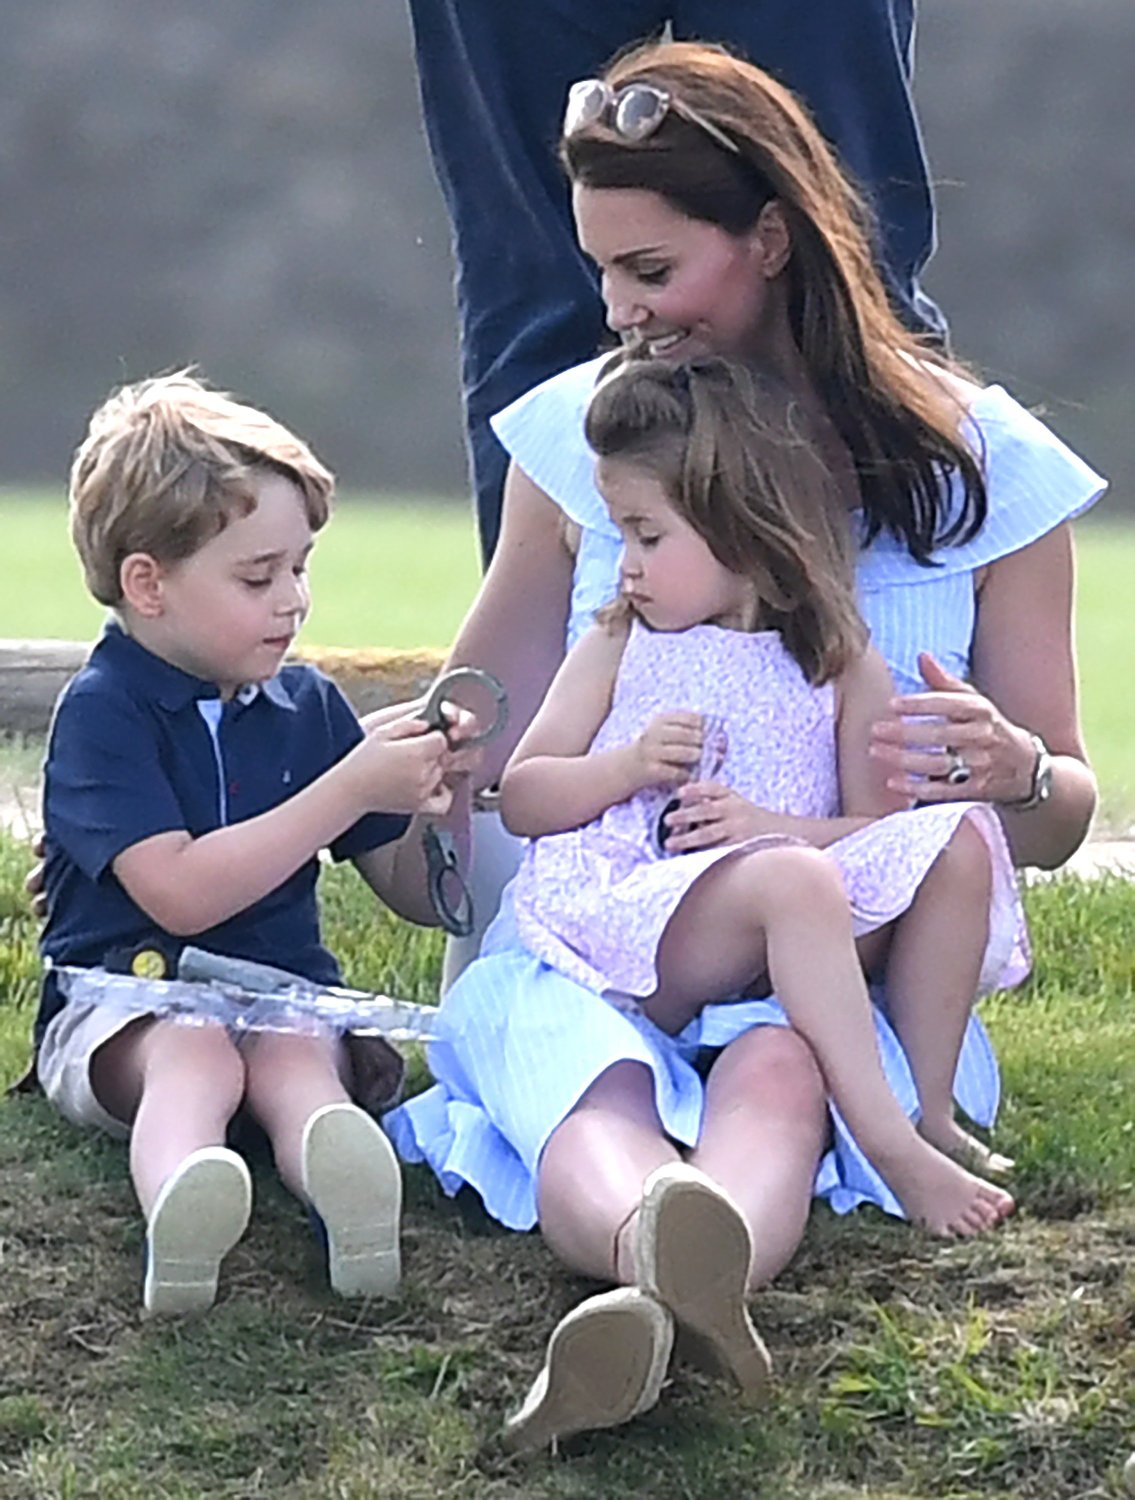 The Duchess of Cambridge, Prince George and Princess Charlotte watch The Duke of Cambridge play in The Maserati Royal Charity Polo Trophy at Beaufort Polo Club, Tetbury, Gloucestershire, UK, on the 10th June 2018. 10 Jun 2018, Image: 374557217, License: Rights-managed, Restrictions: NO United Kingdom, Model Release: no, Credit line: Profimedia, Mega Agency